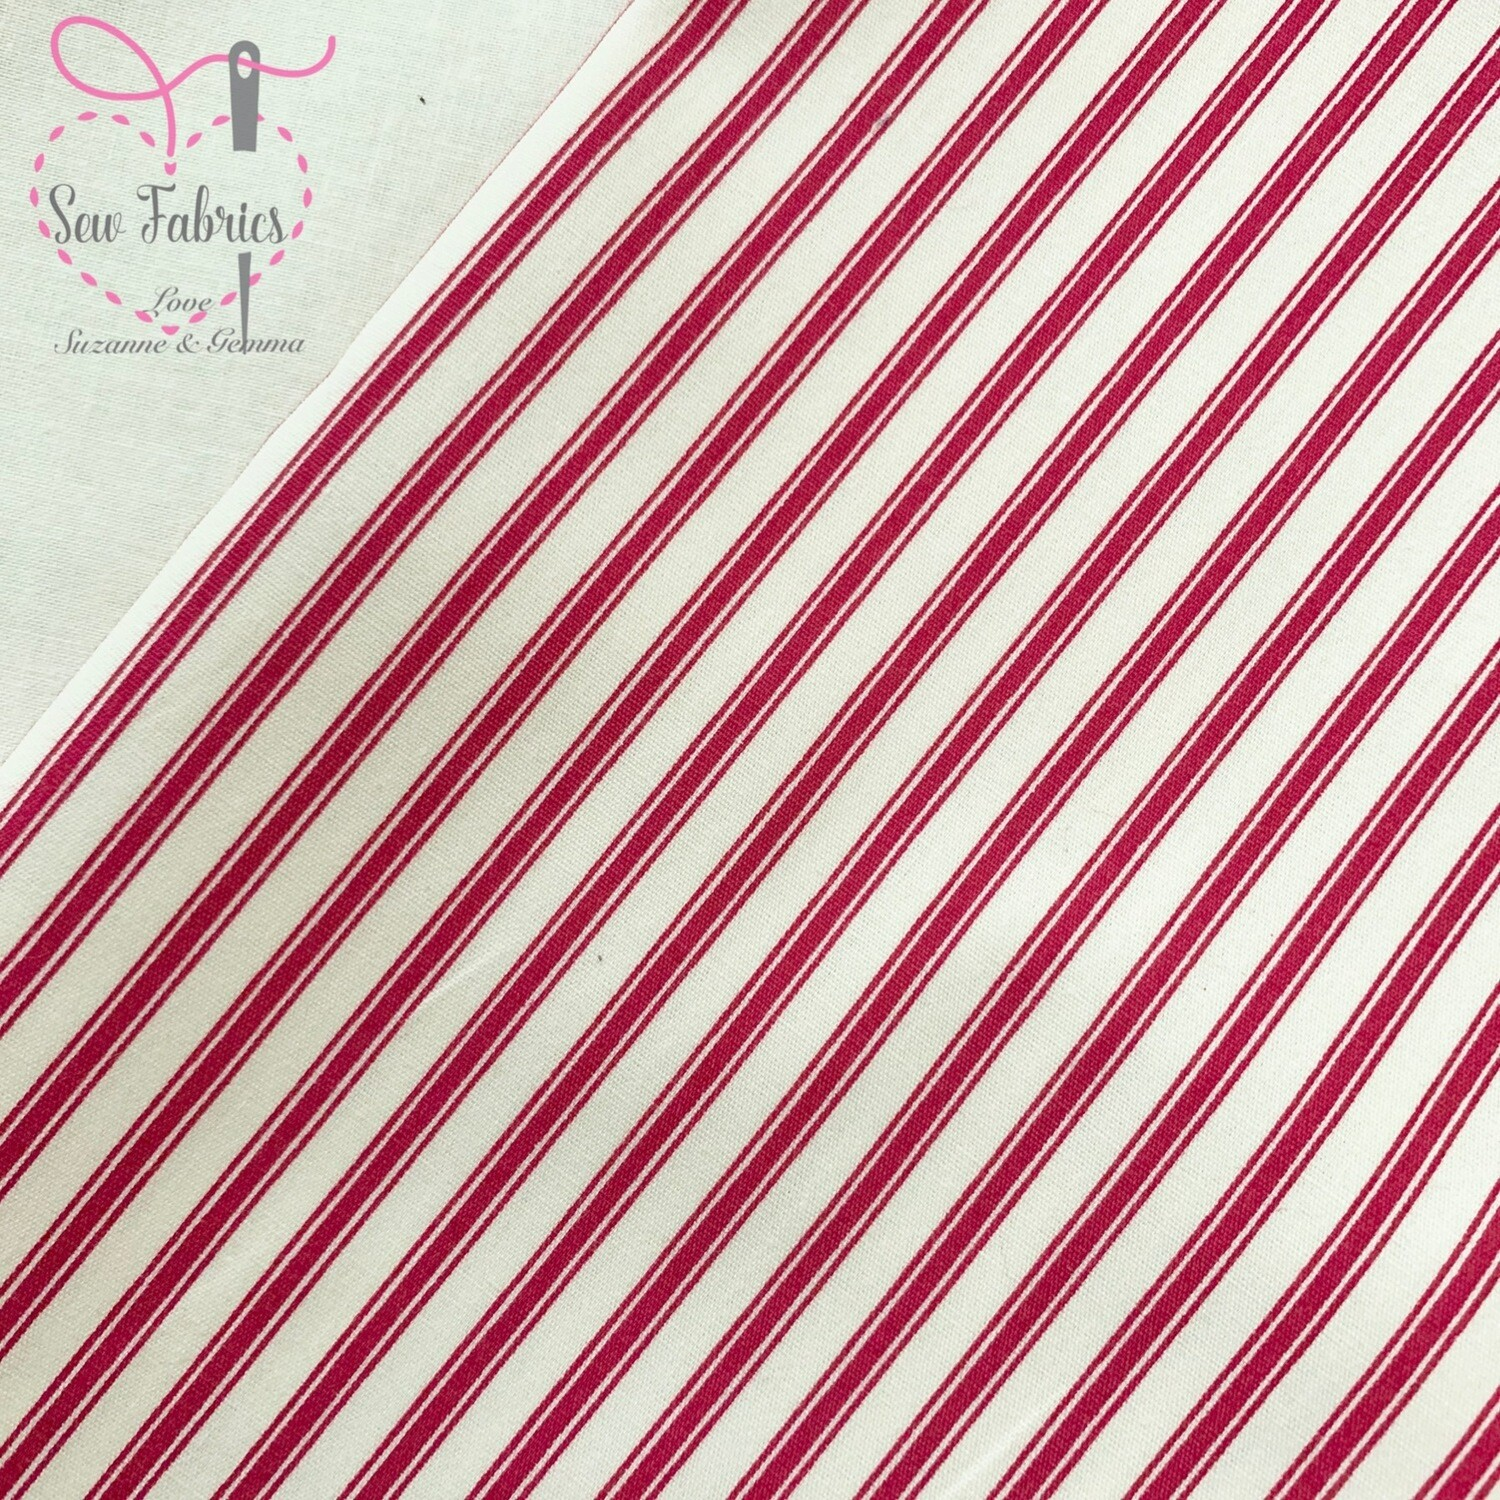 Rose and Hubble Red Stripe Fabric 100% Cotton Poplin Geometric Material Striped